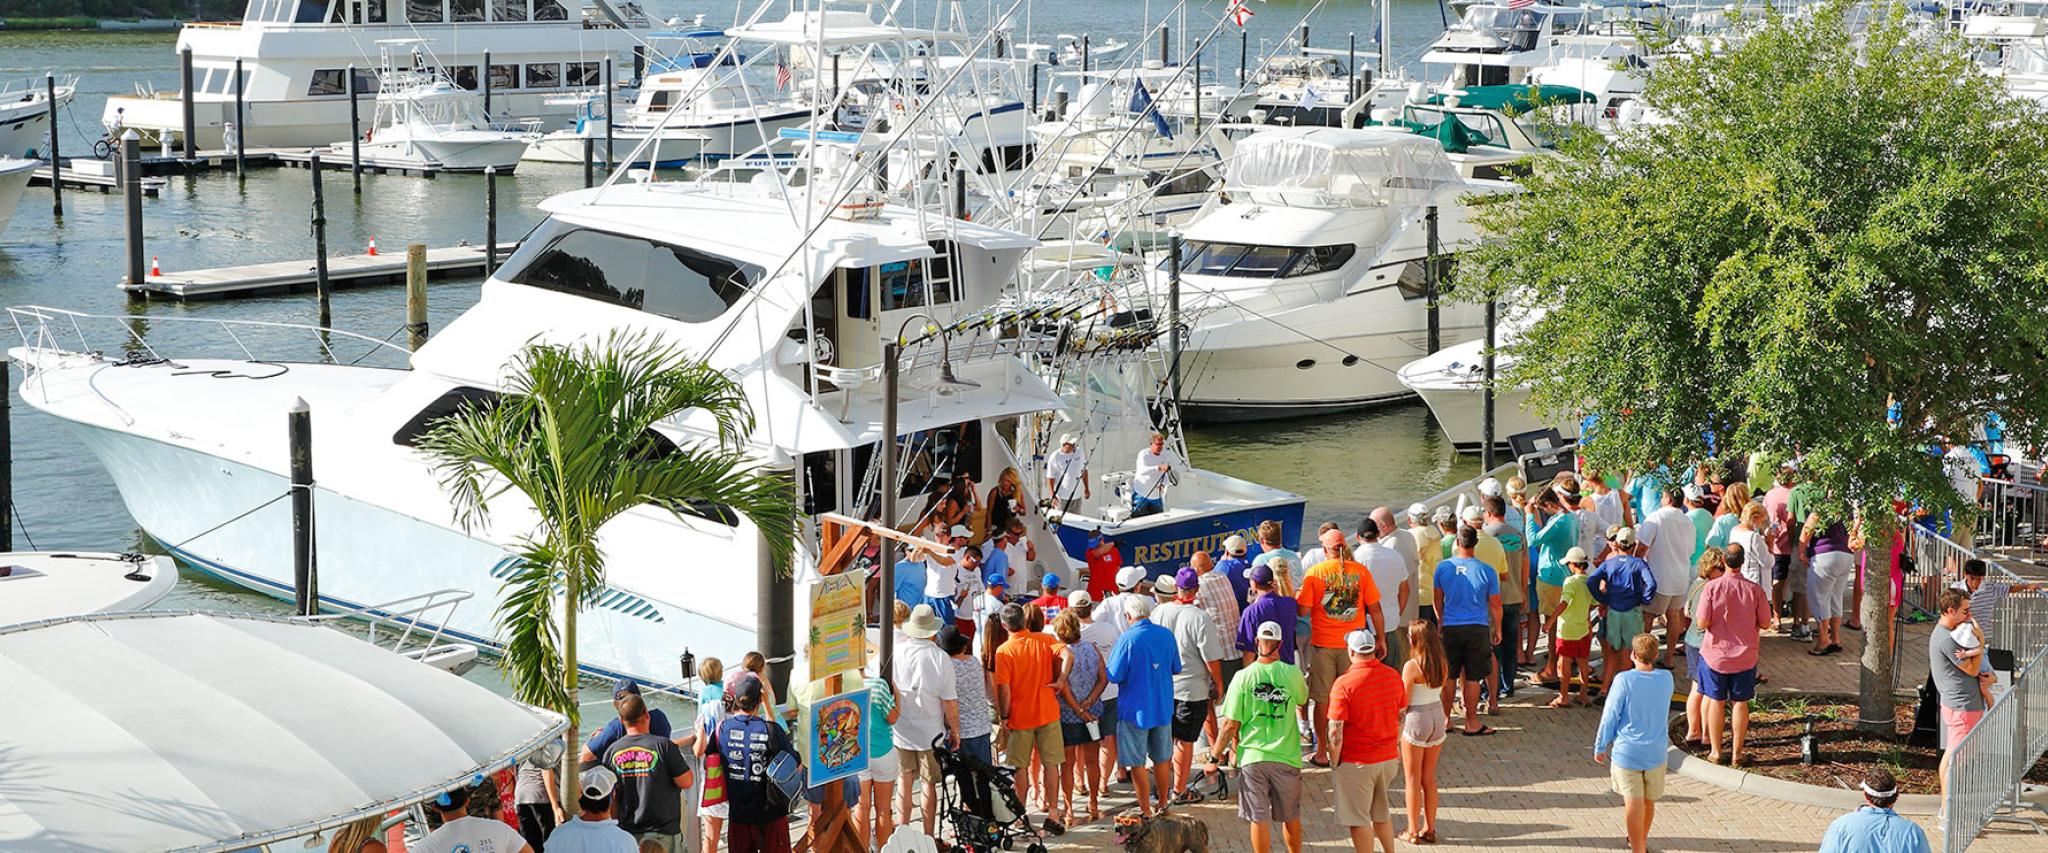 Blue Marlin Grand Championship at The Wharf Orange Beach